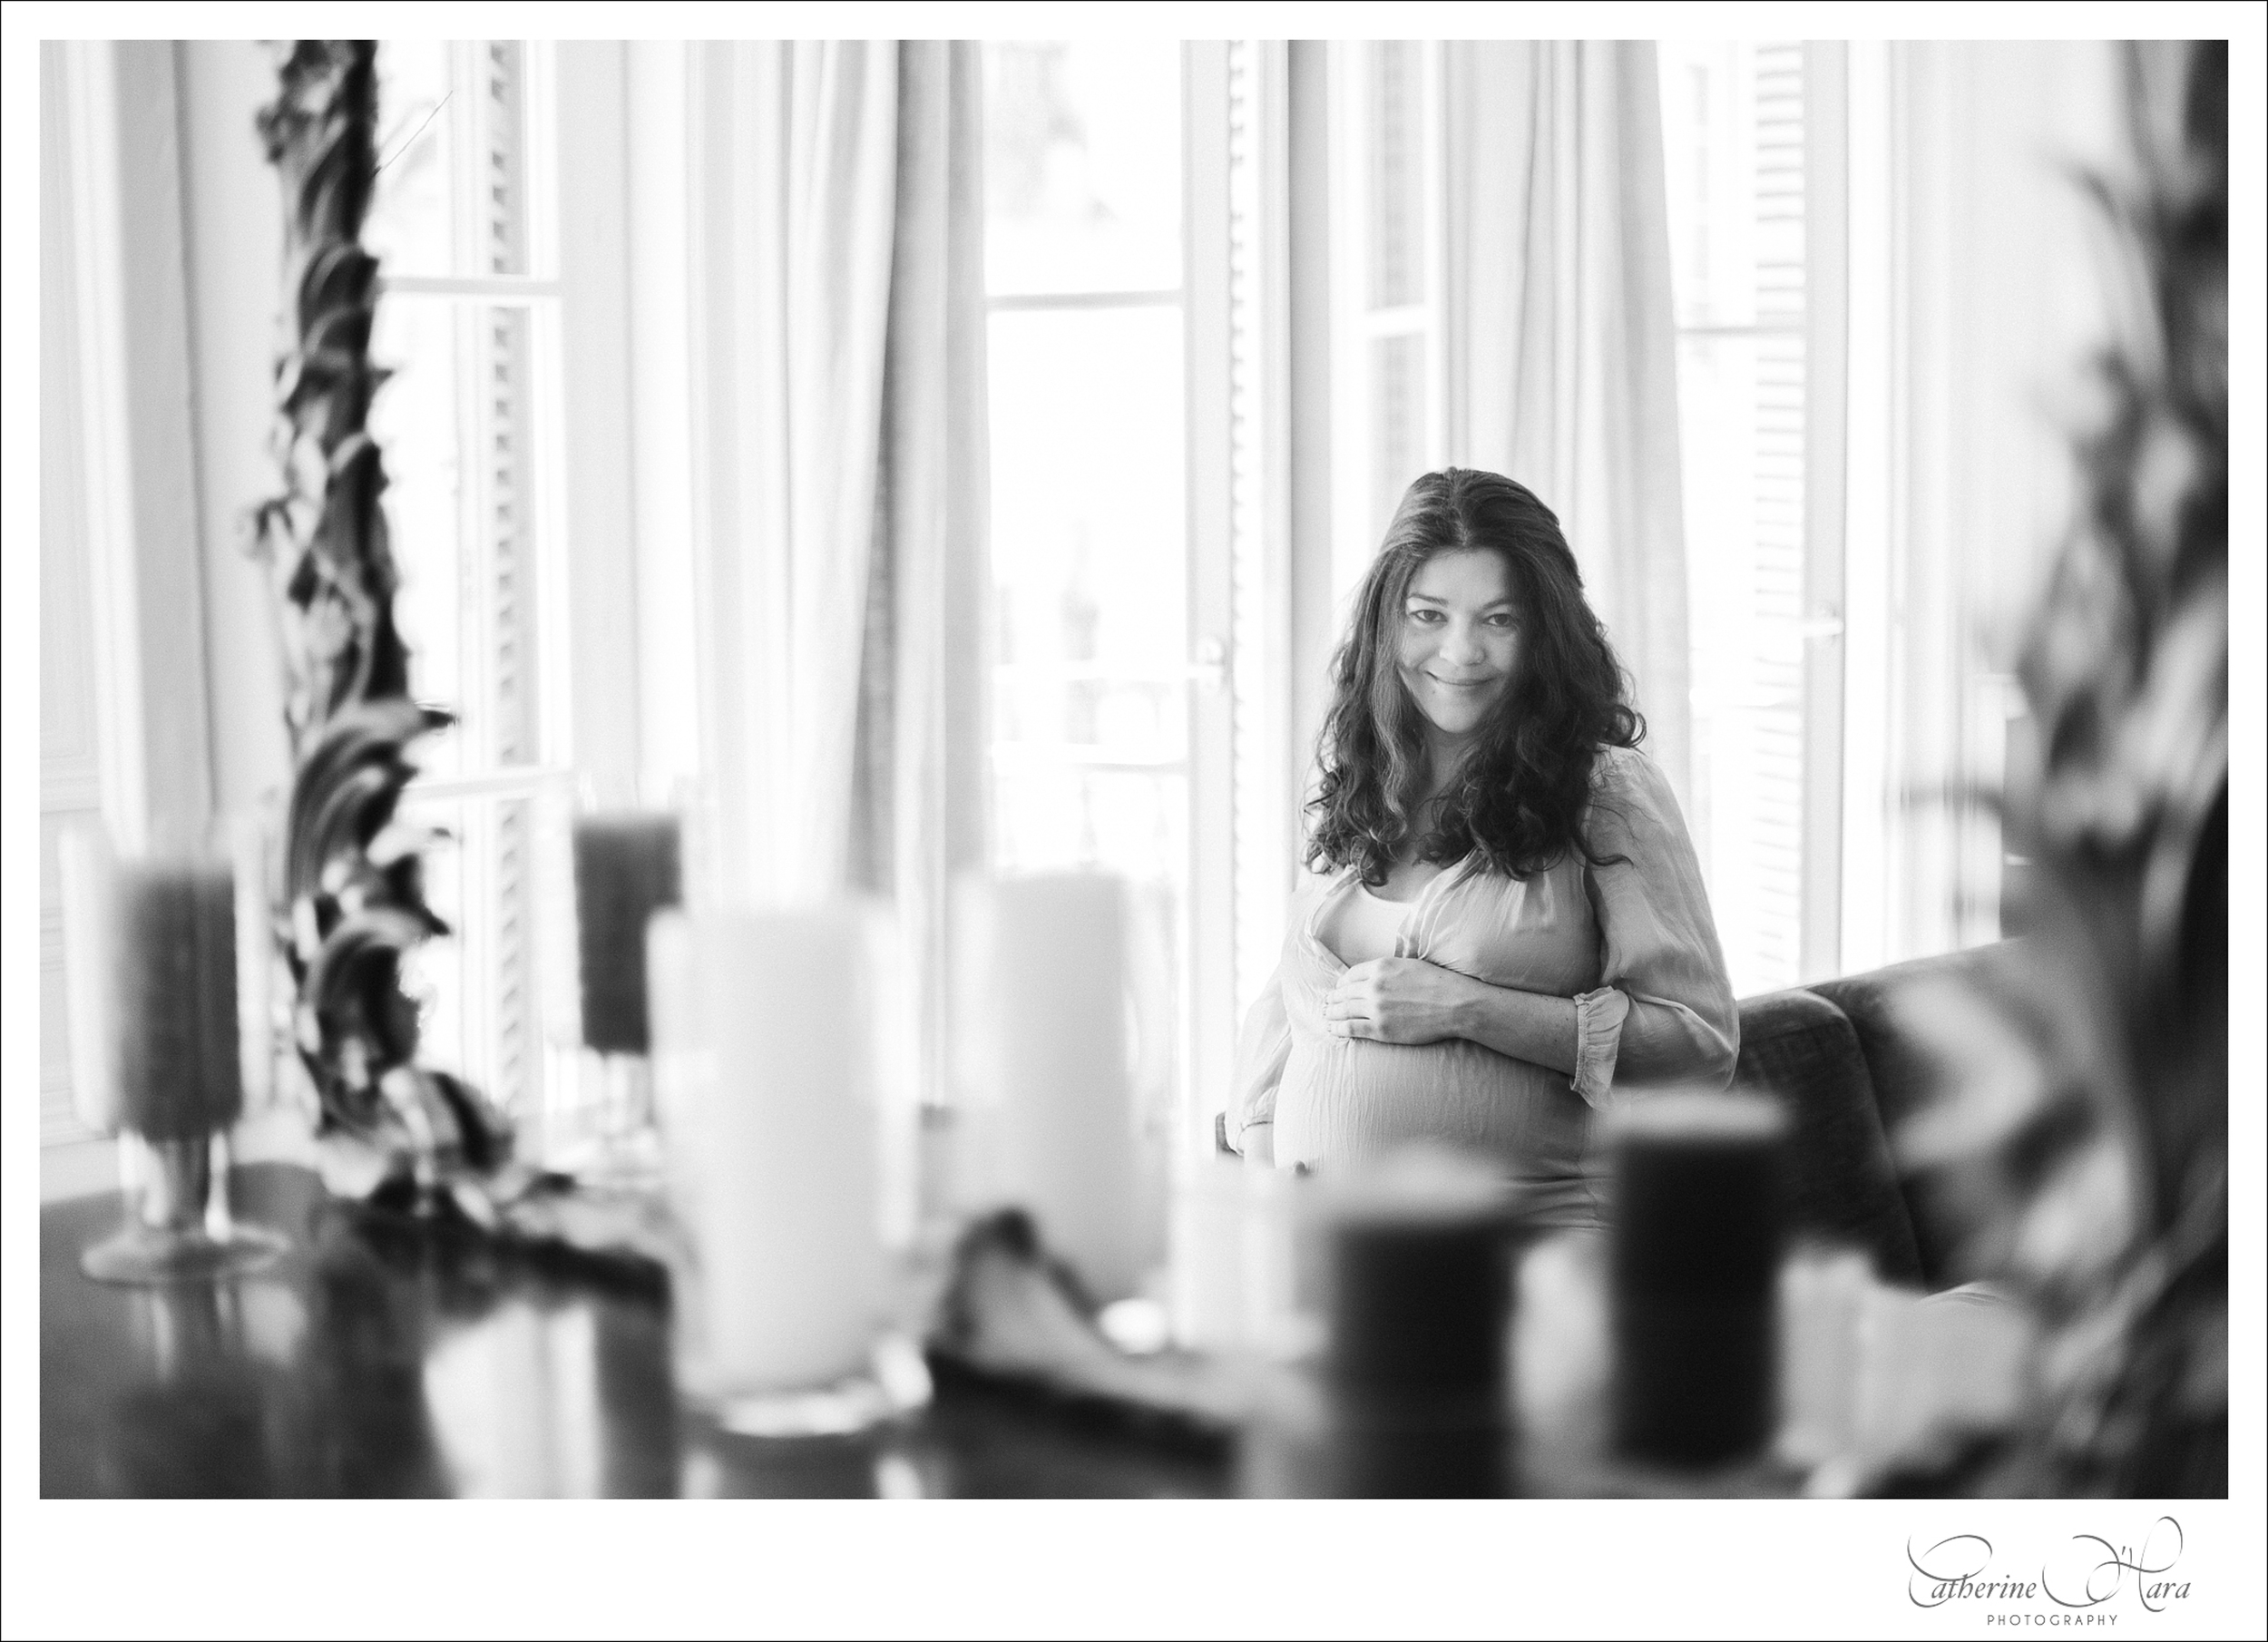 paris-photographer-maternity-shoot-05.jpg